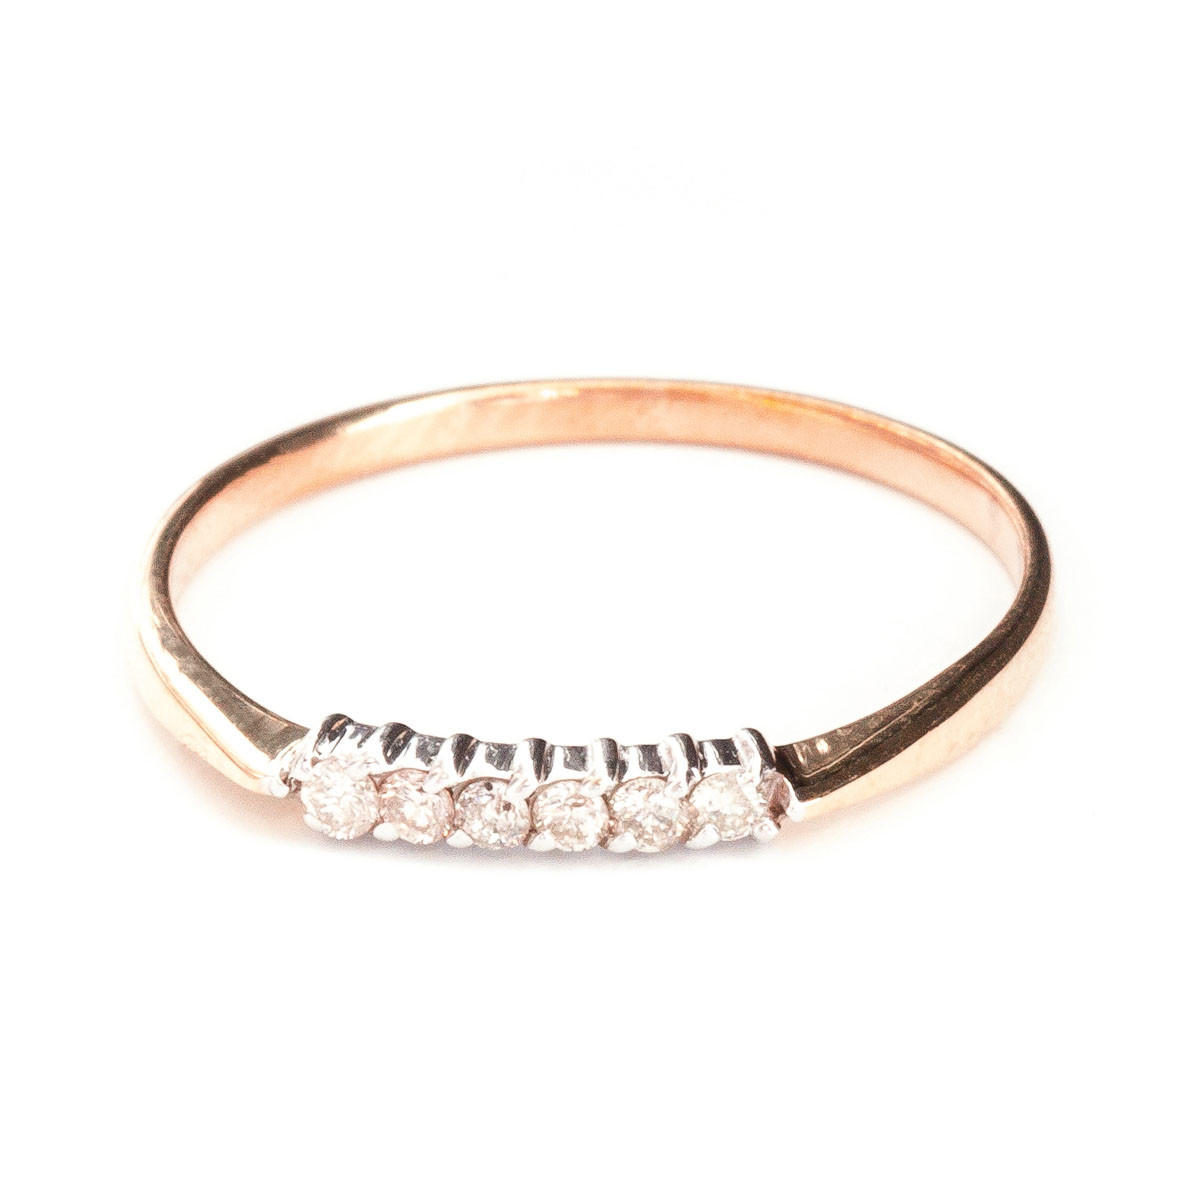 Round Cut Diamond Ring 0.1 ctw in 9ct Rose Gold